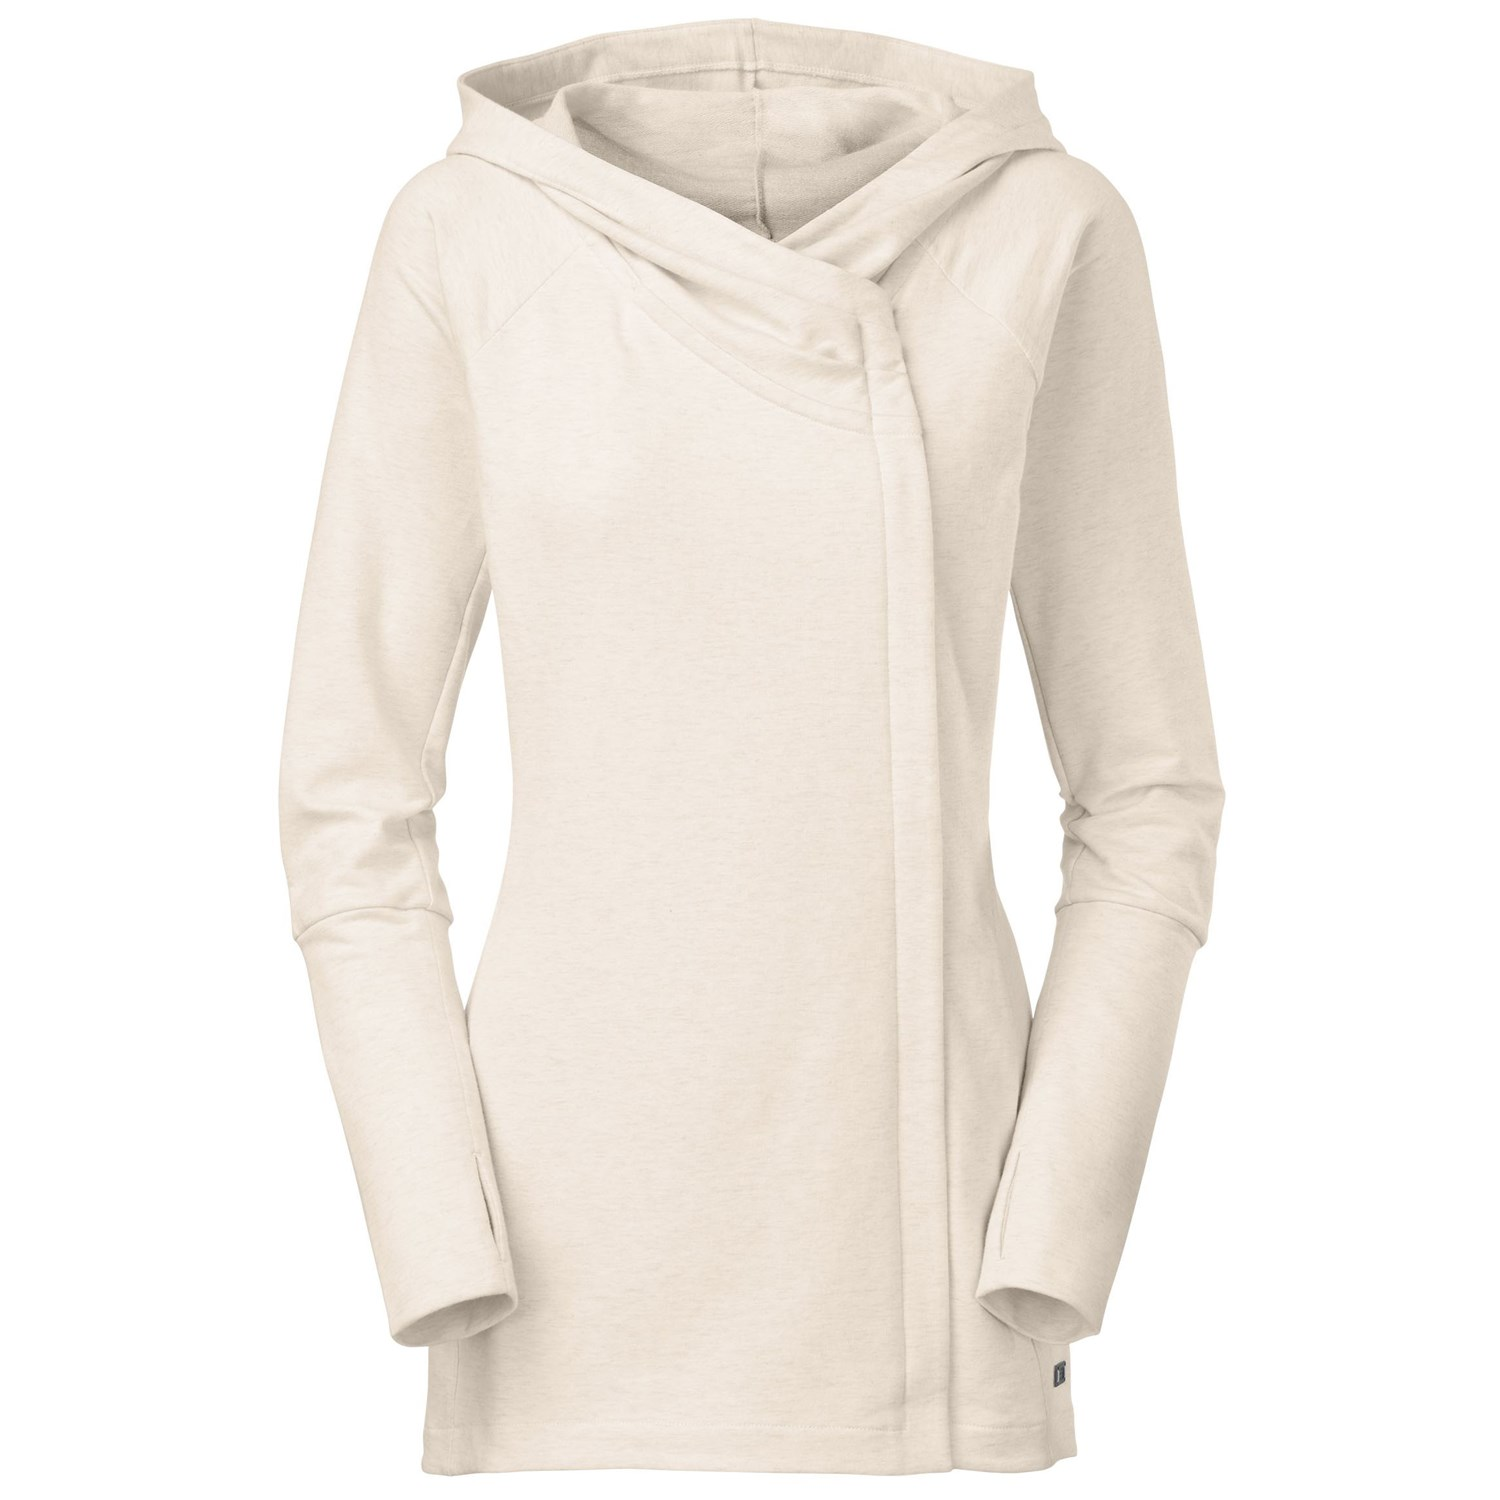 8e5a78006 The North Face Wrap-Ture Jacket - Women's | evo